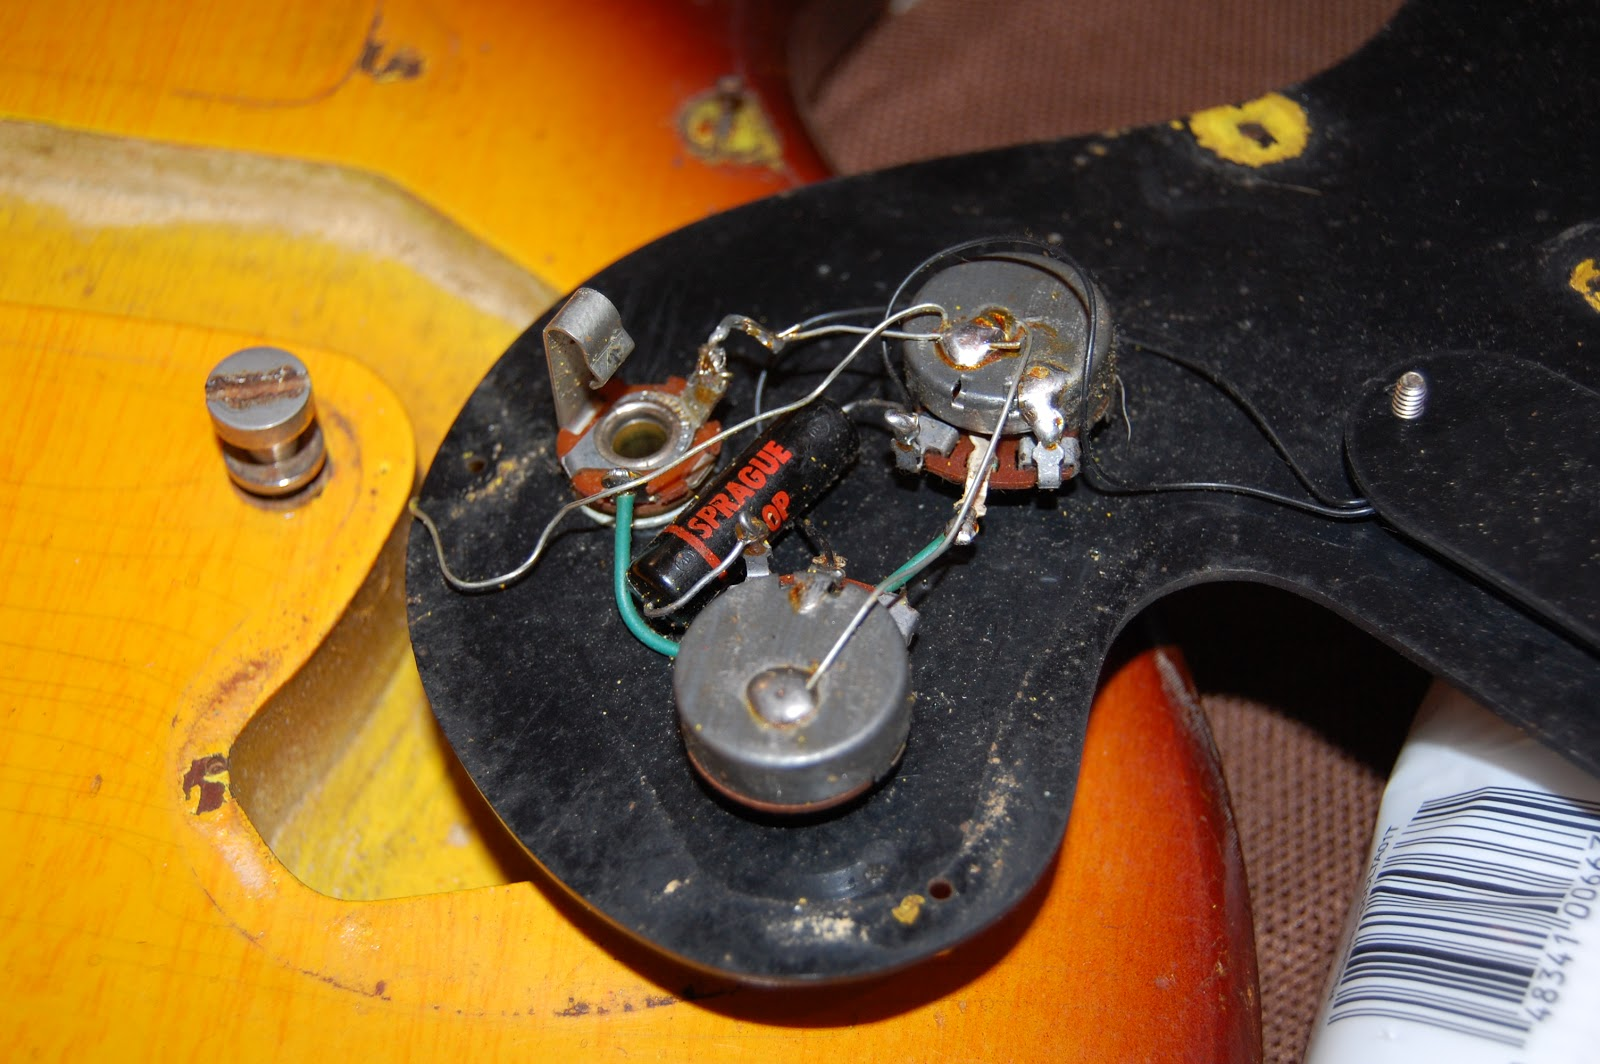 Gibson Melody Maker Wiring Harness Trusted Diagrams 1967 Sg Galasso Guitars The 200k Les Pauls Little Brother 1960